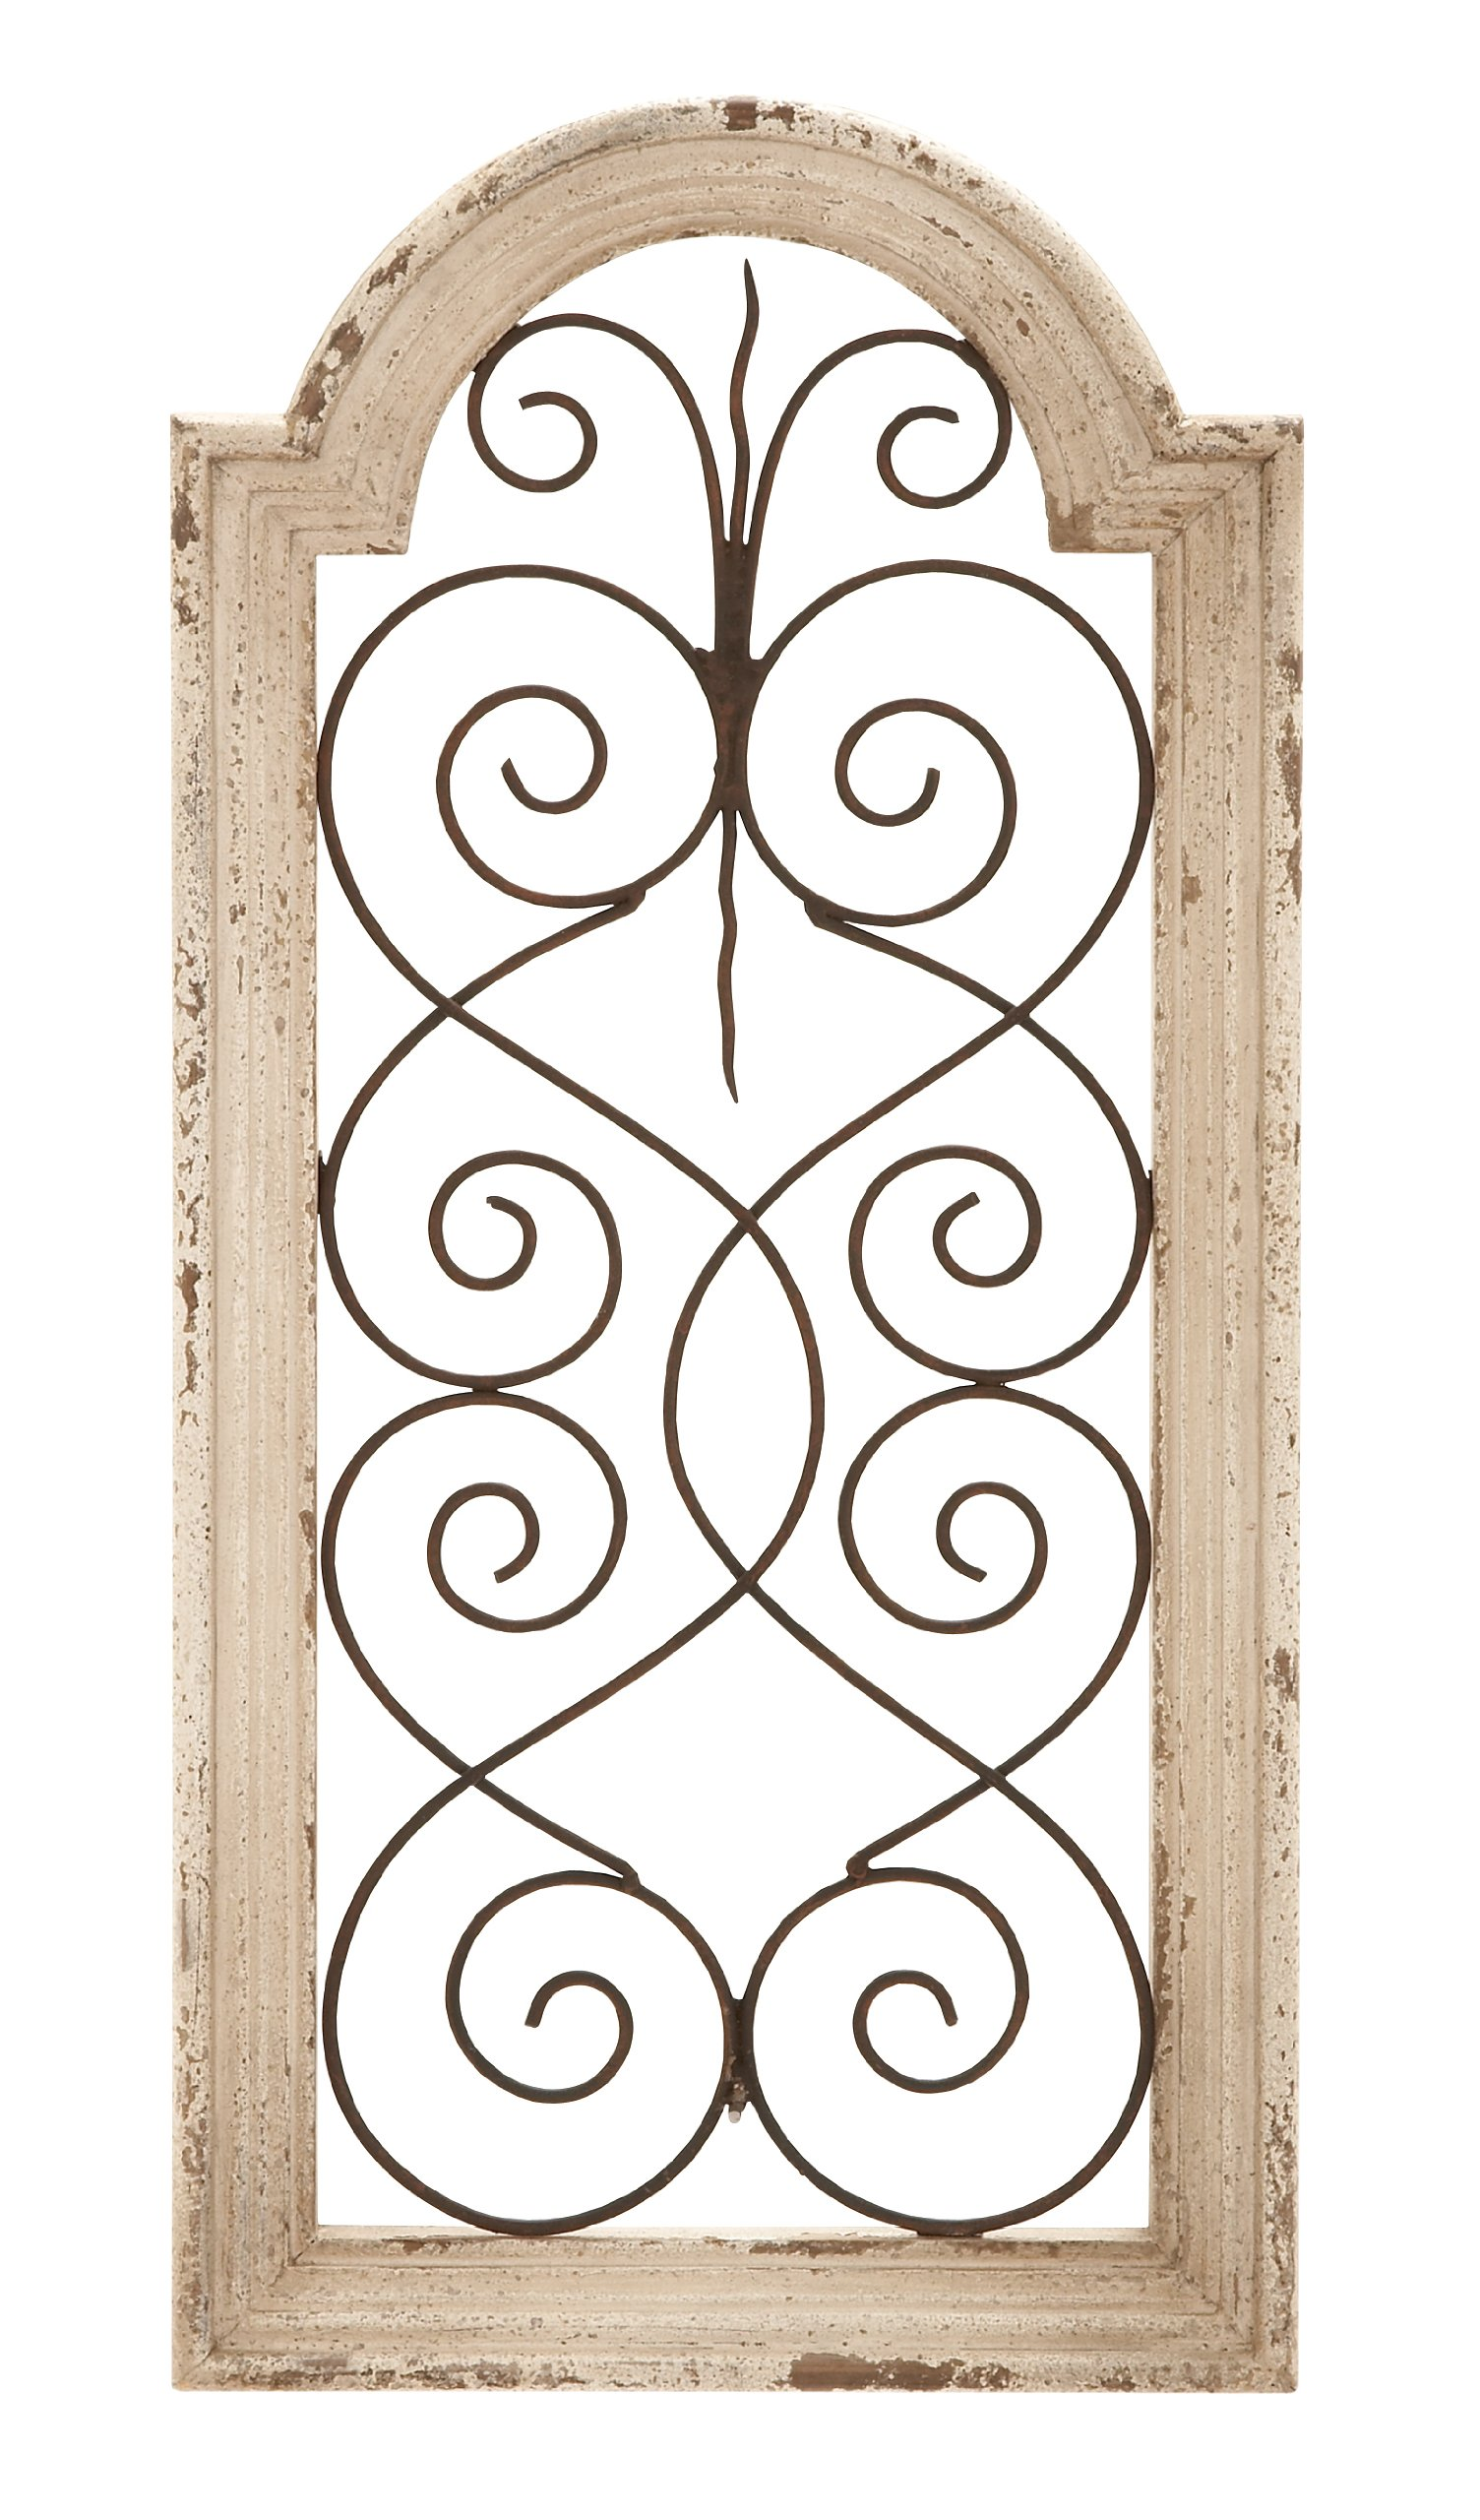 Deco 79 52790 Wood Metal Wall Panel, 10'' W x 20'' H